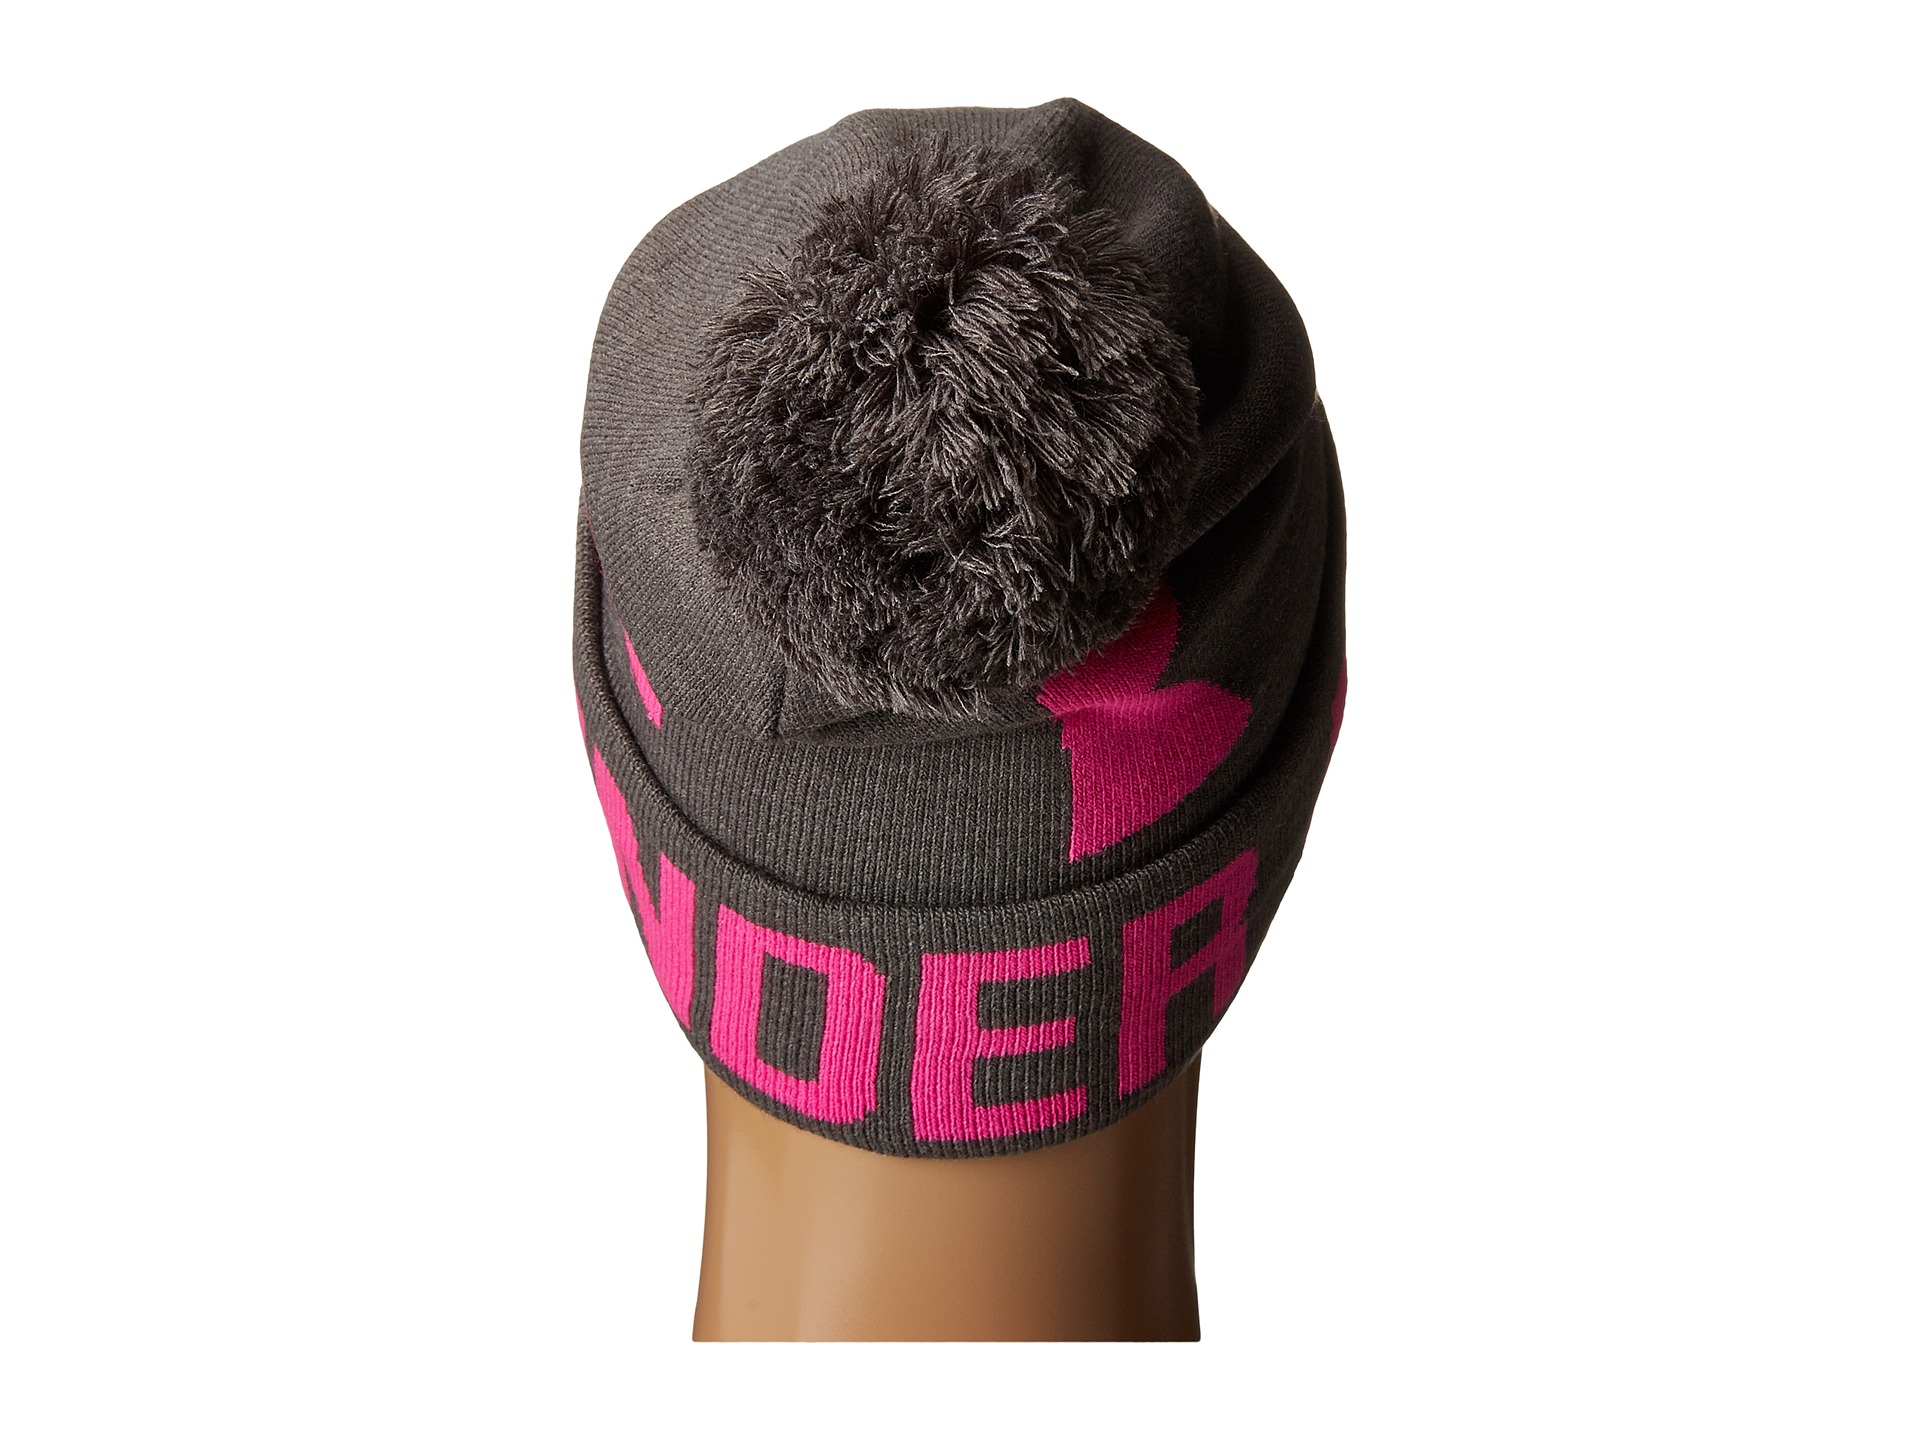 ... outlet store sale deeb5 e50a2 Lyst - Under Armour Ua Graphic Pom Pom  Beanie in Black ... 123144a42b3f